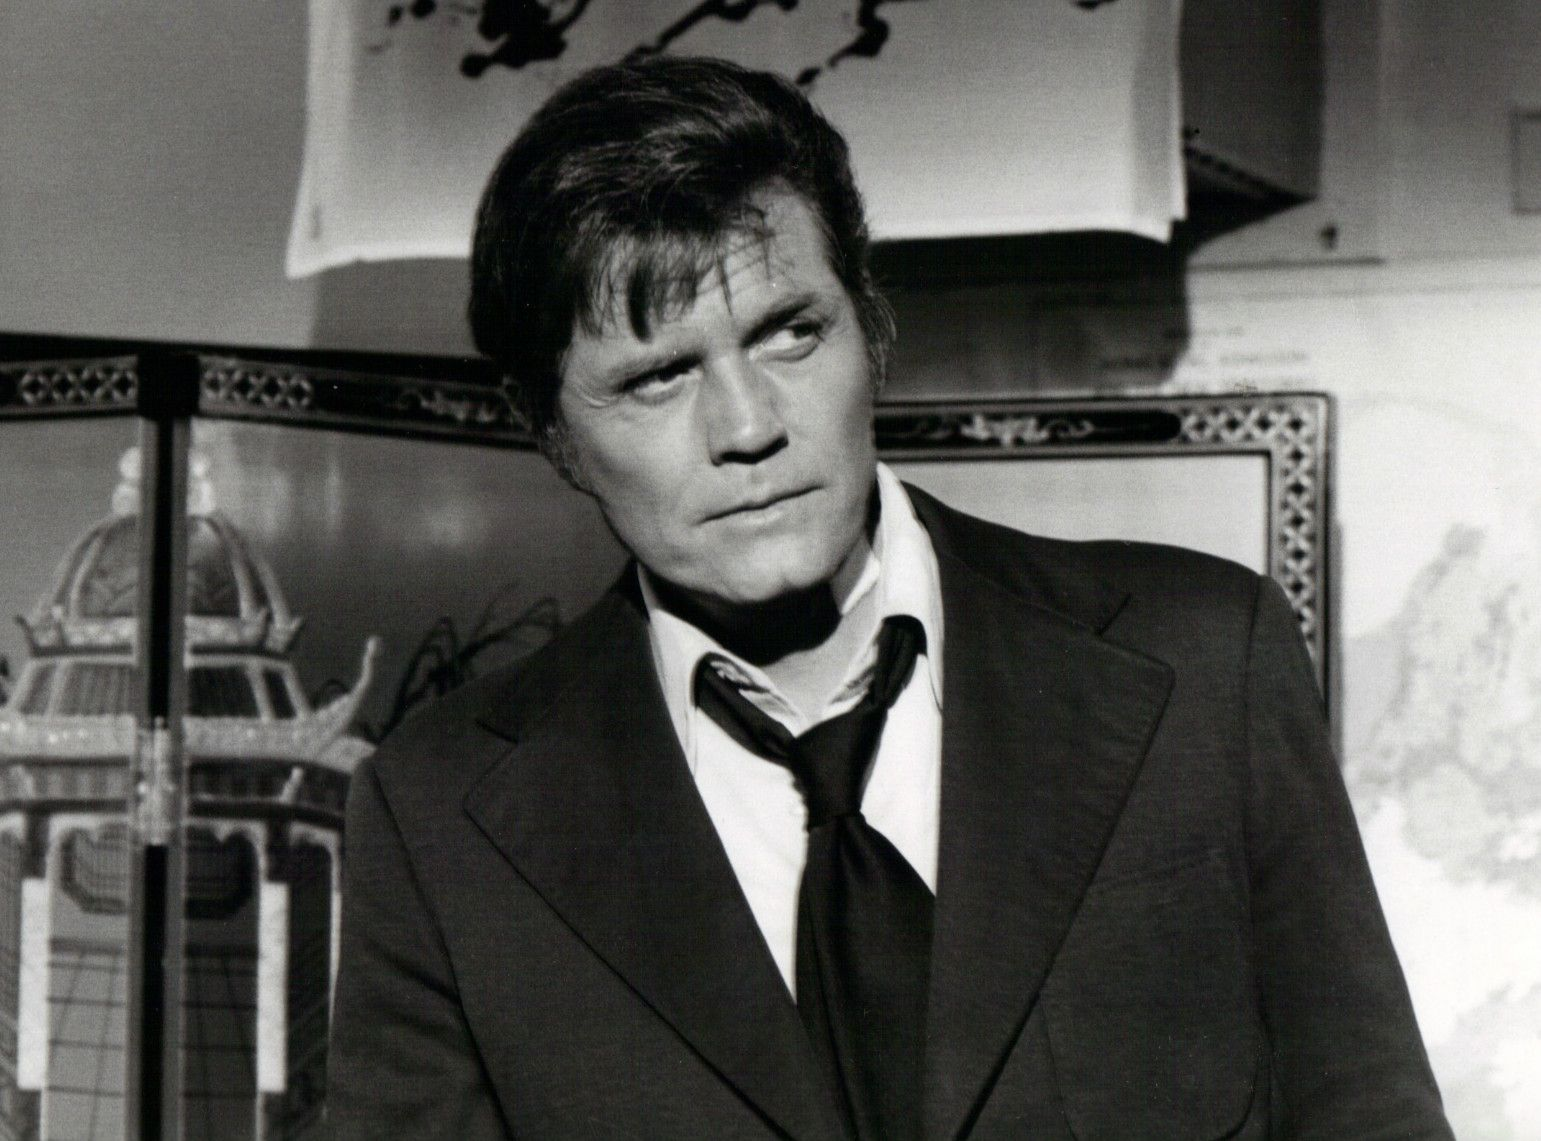 jack lord as steve mcgarrett on hawaii five o hawaii five o  jack lord as steve mcgarrett on hawaii five o hawaii five o 1968 1980 jack lord other the o jays and hawaii five o